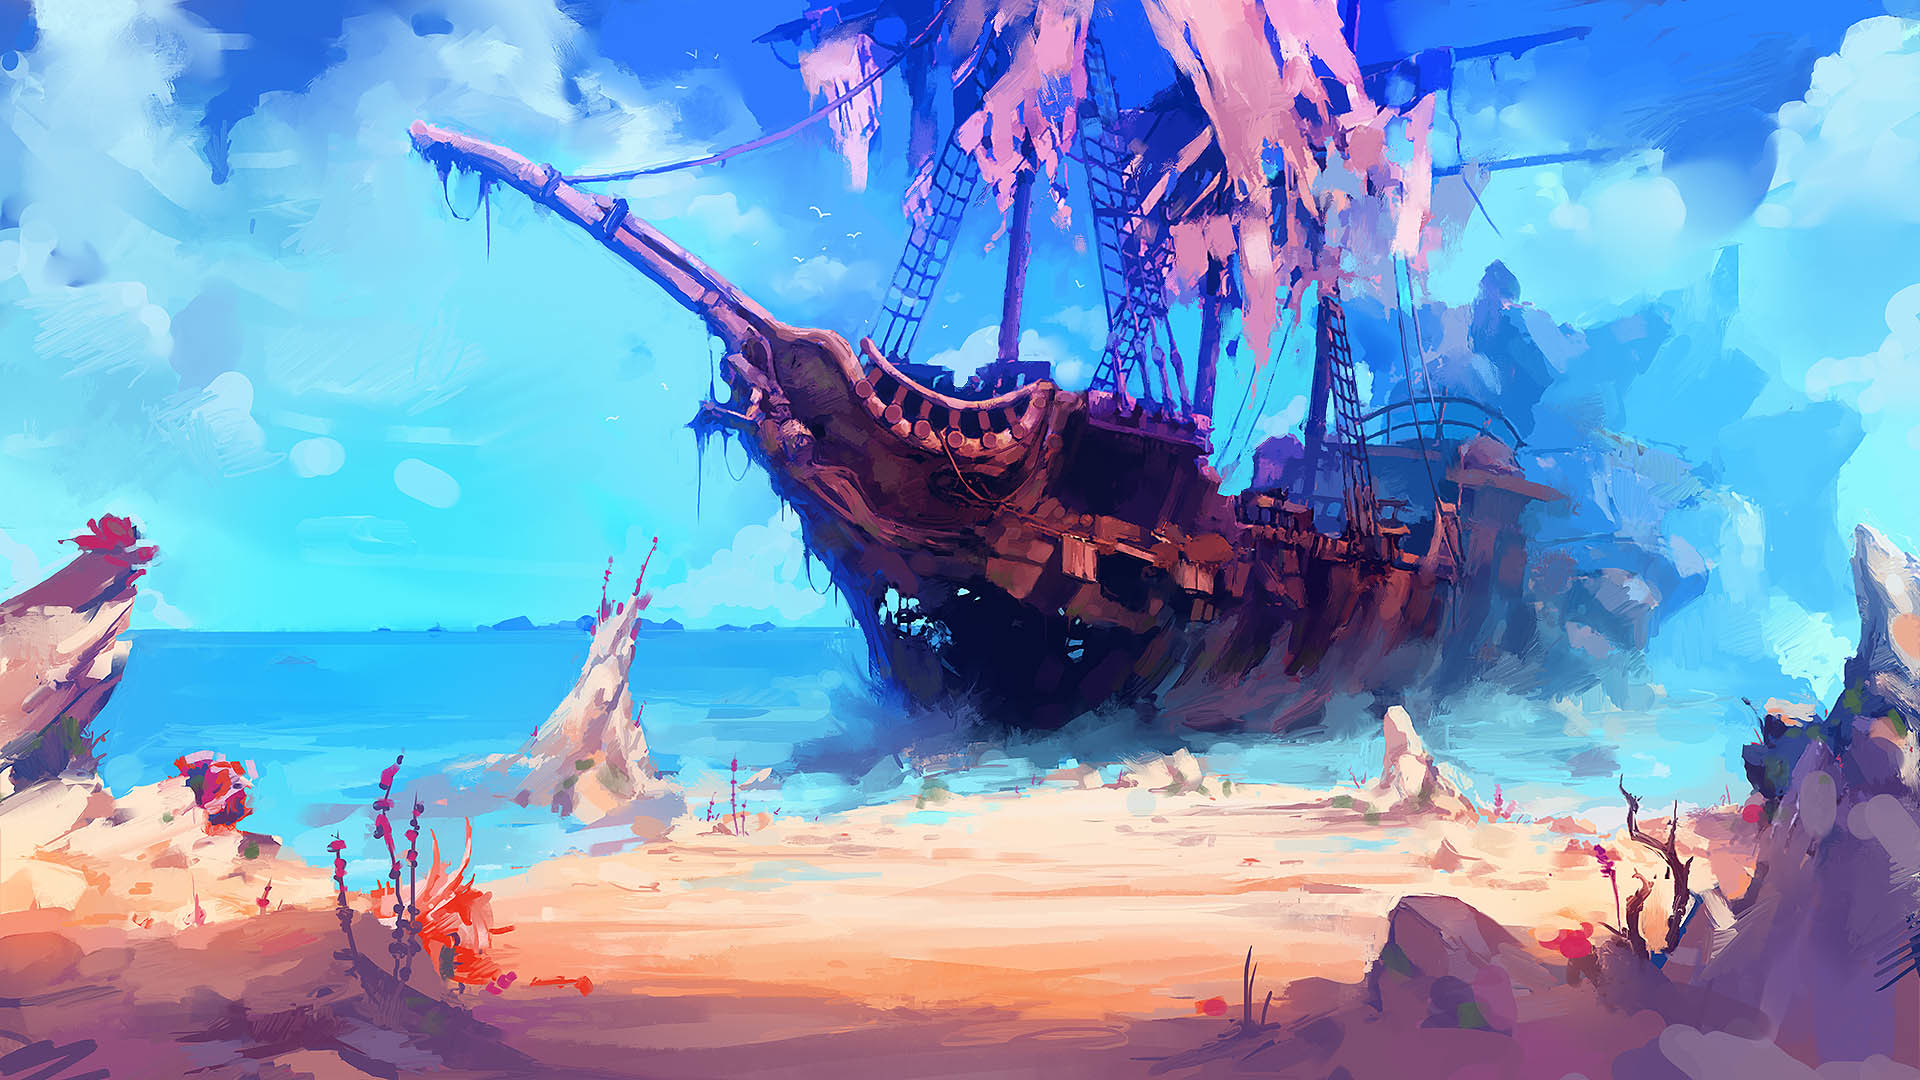 Res: 1920x1080, Shipwreck. Wallpaper from Trine 3: The Artifacts of Power